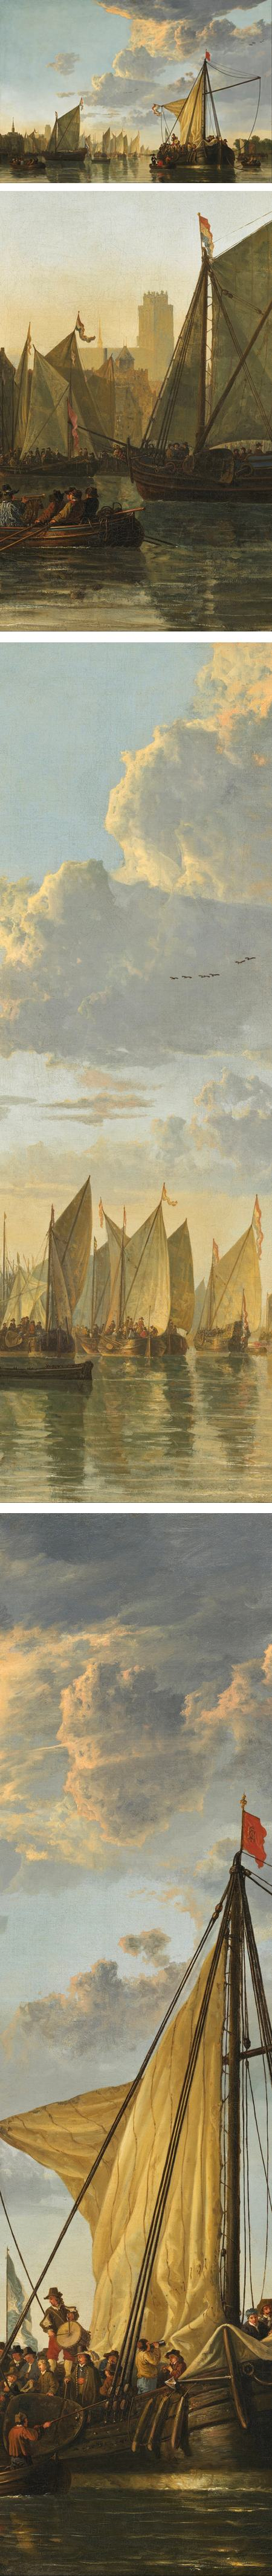 The Maas at Dordrecht, Aelbert Cuyp